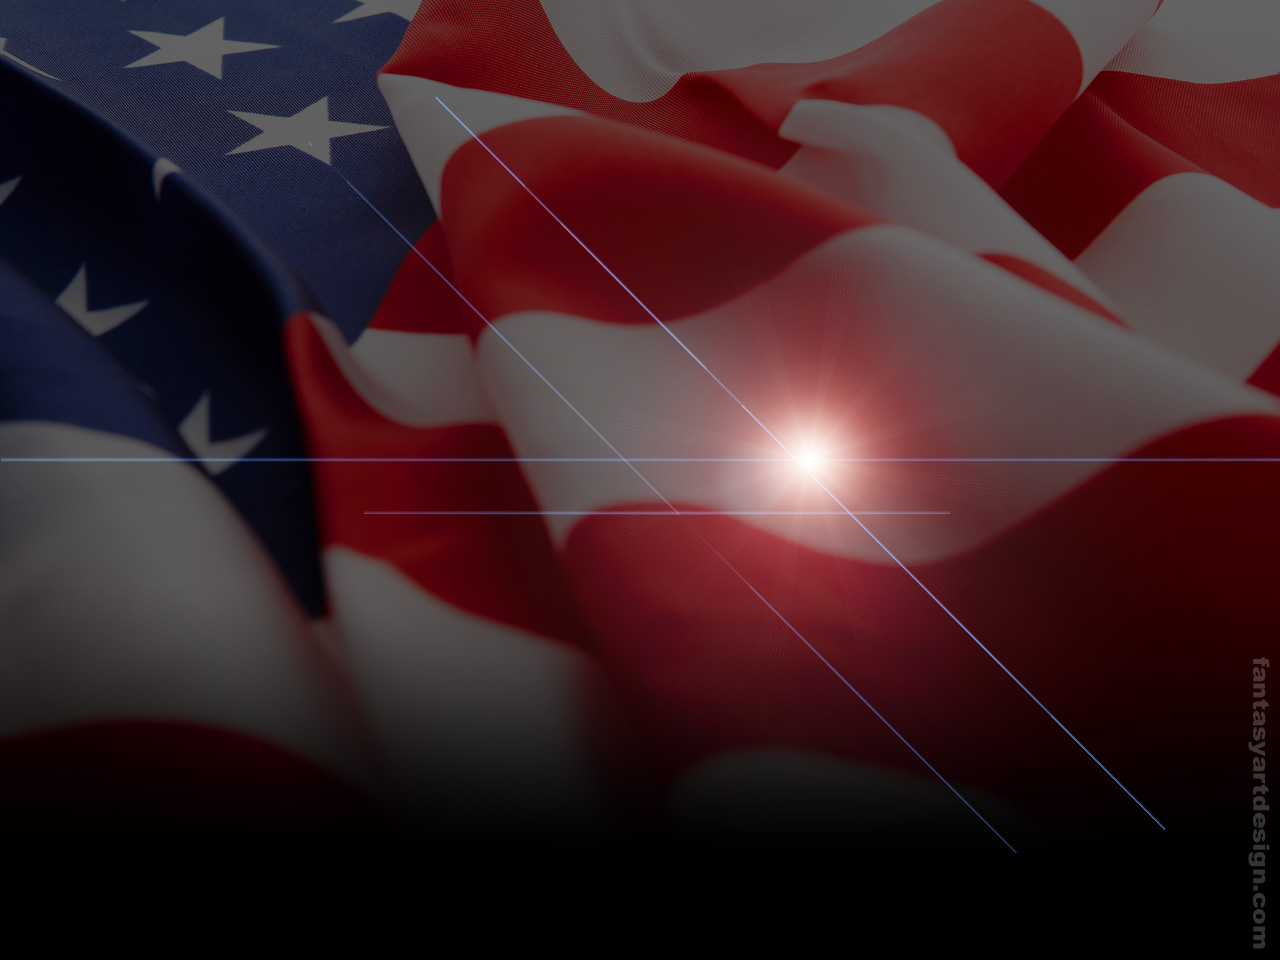 American flag screensaver glory 1280 x 960pix wallpaper Abstract 1280x960